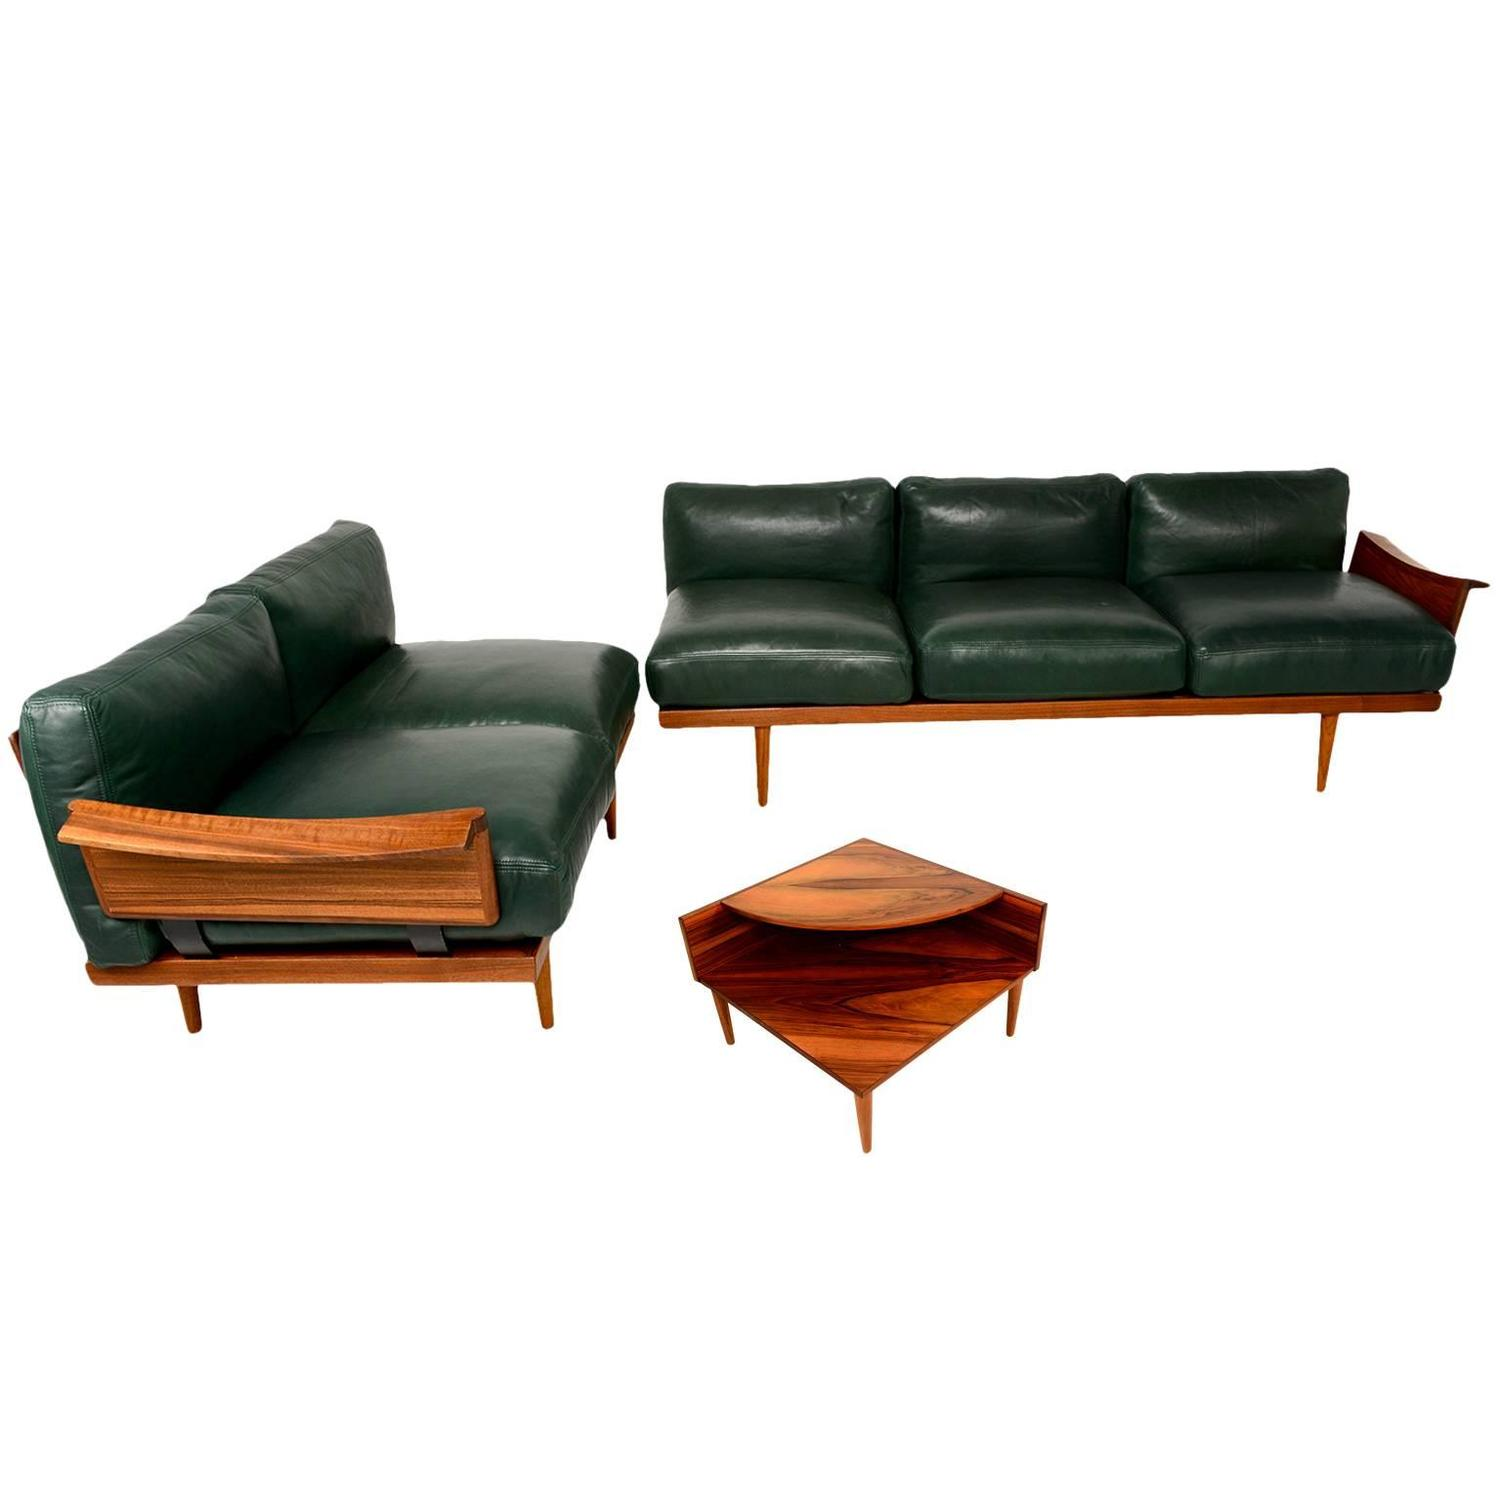 Gus Flip Sofa Bed Price picture on settee cushions on sale with Gus Flip Sofa Bed Price, sofa 833664e168ab961053529b50b531d634